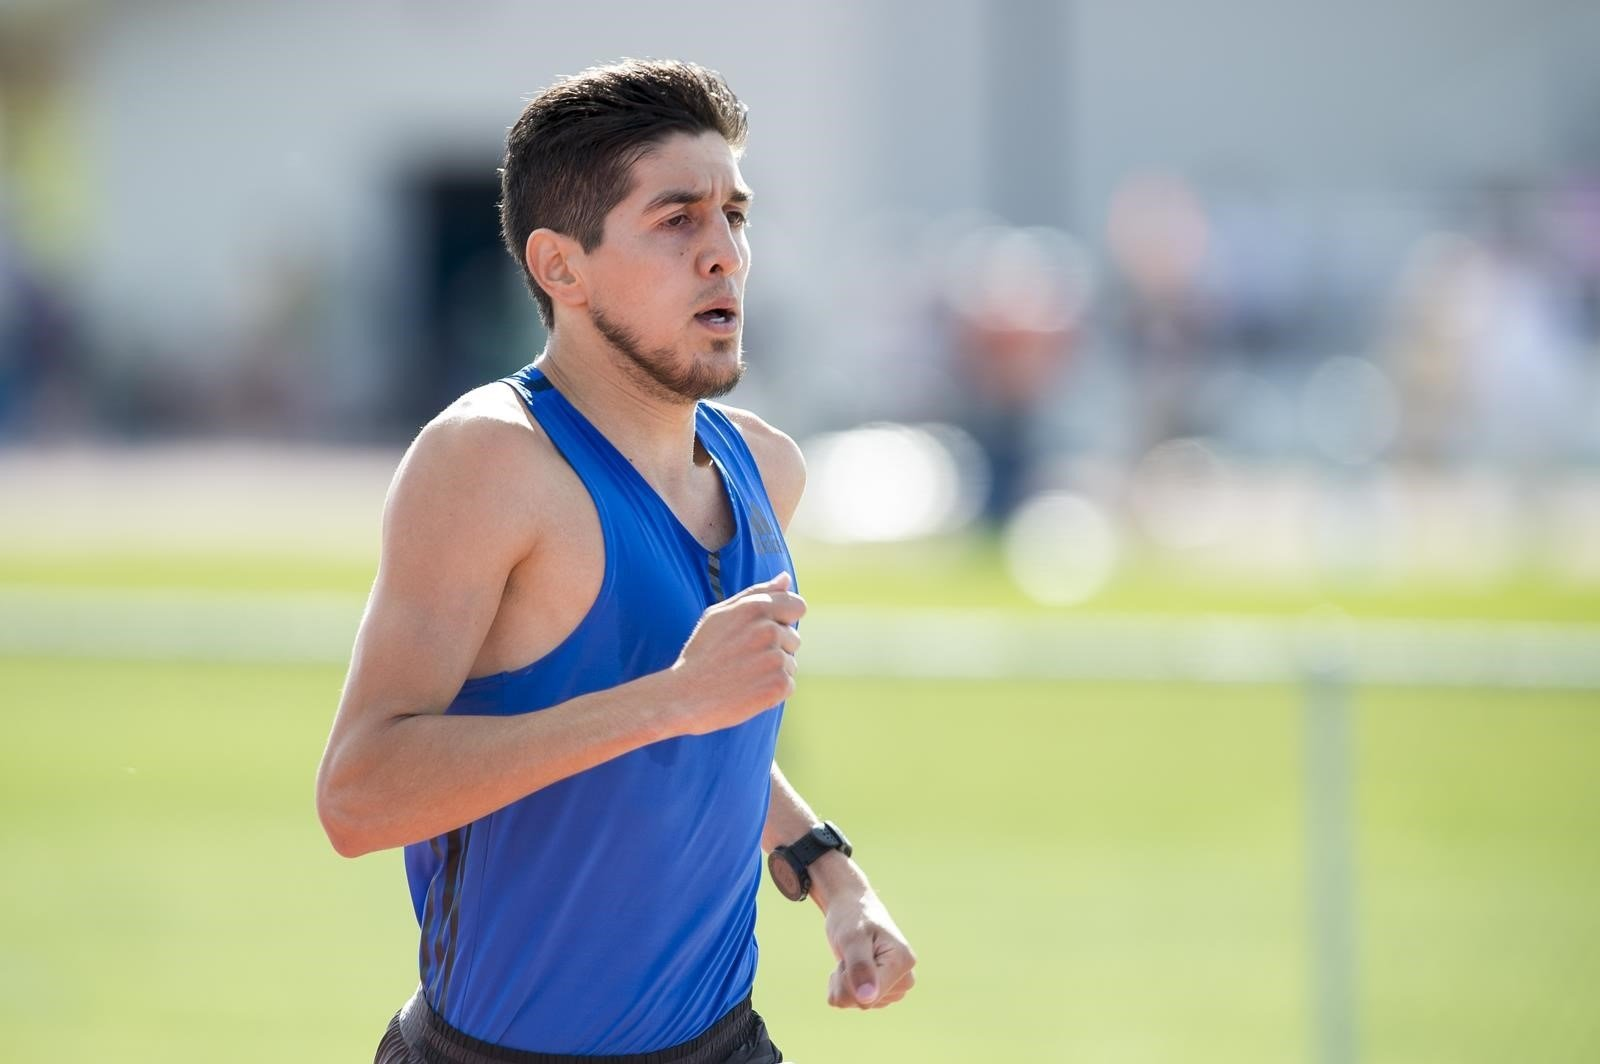 Montana State All-American Cristian Soratos crosses the line fifth in the 1,500m at the USA Outdoor Track and Field Championships